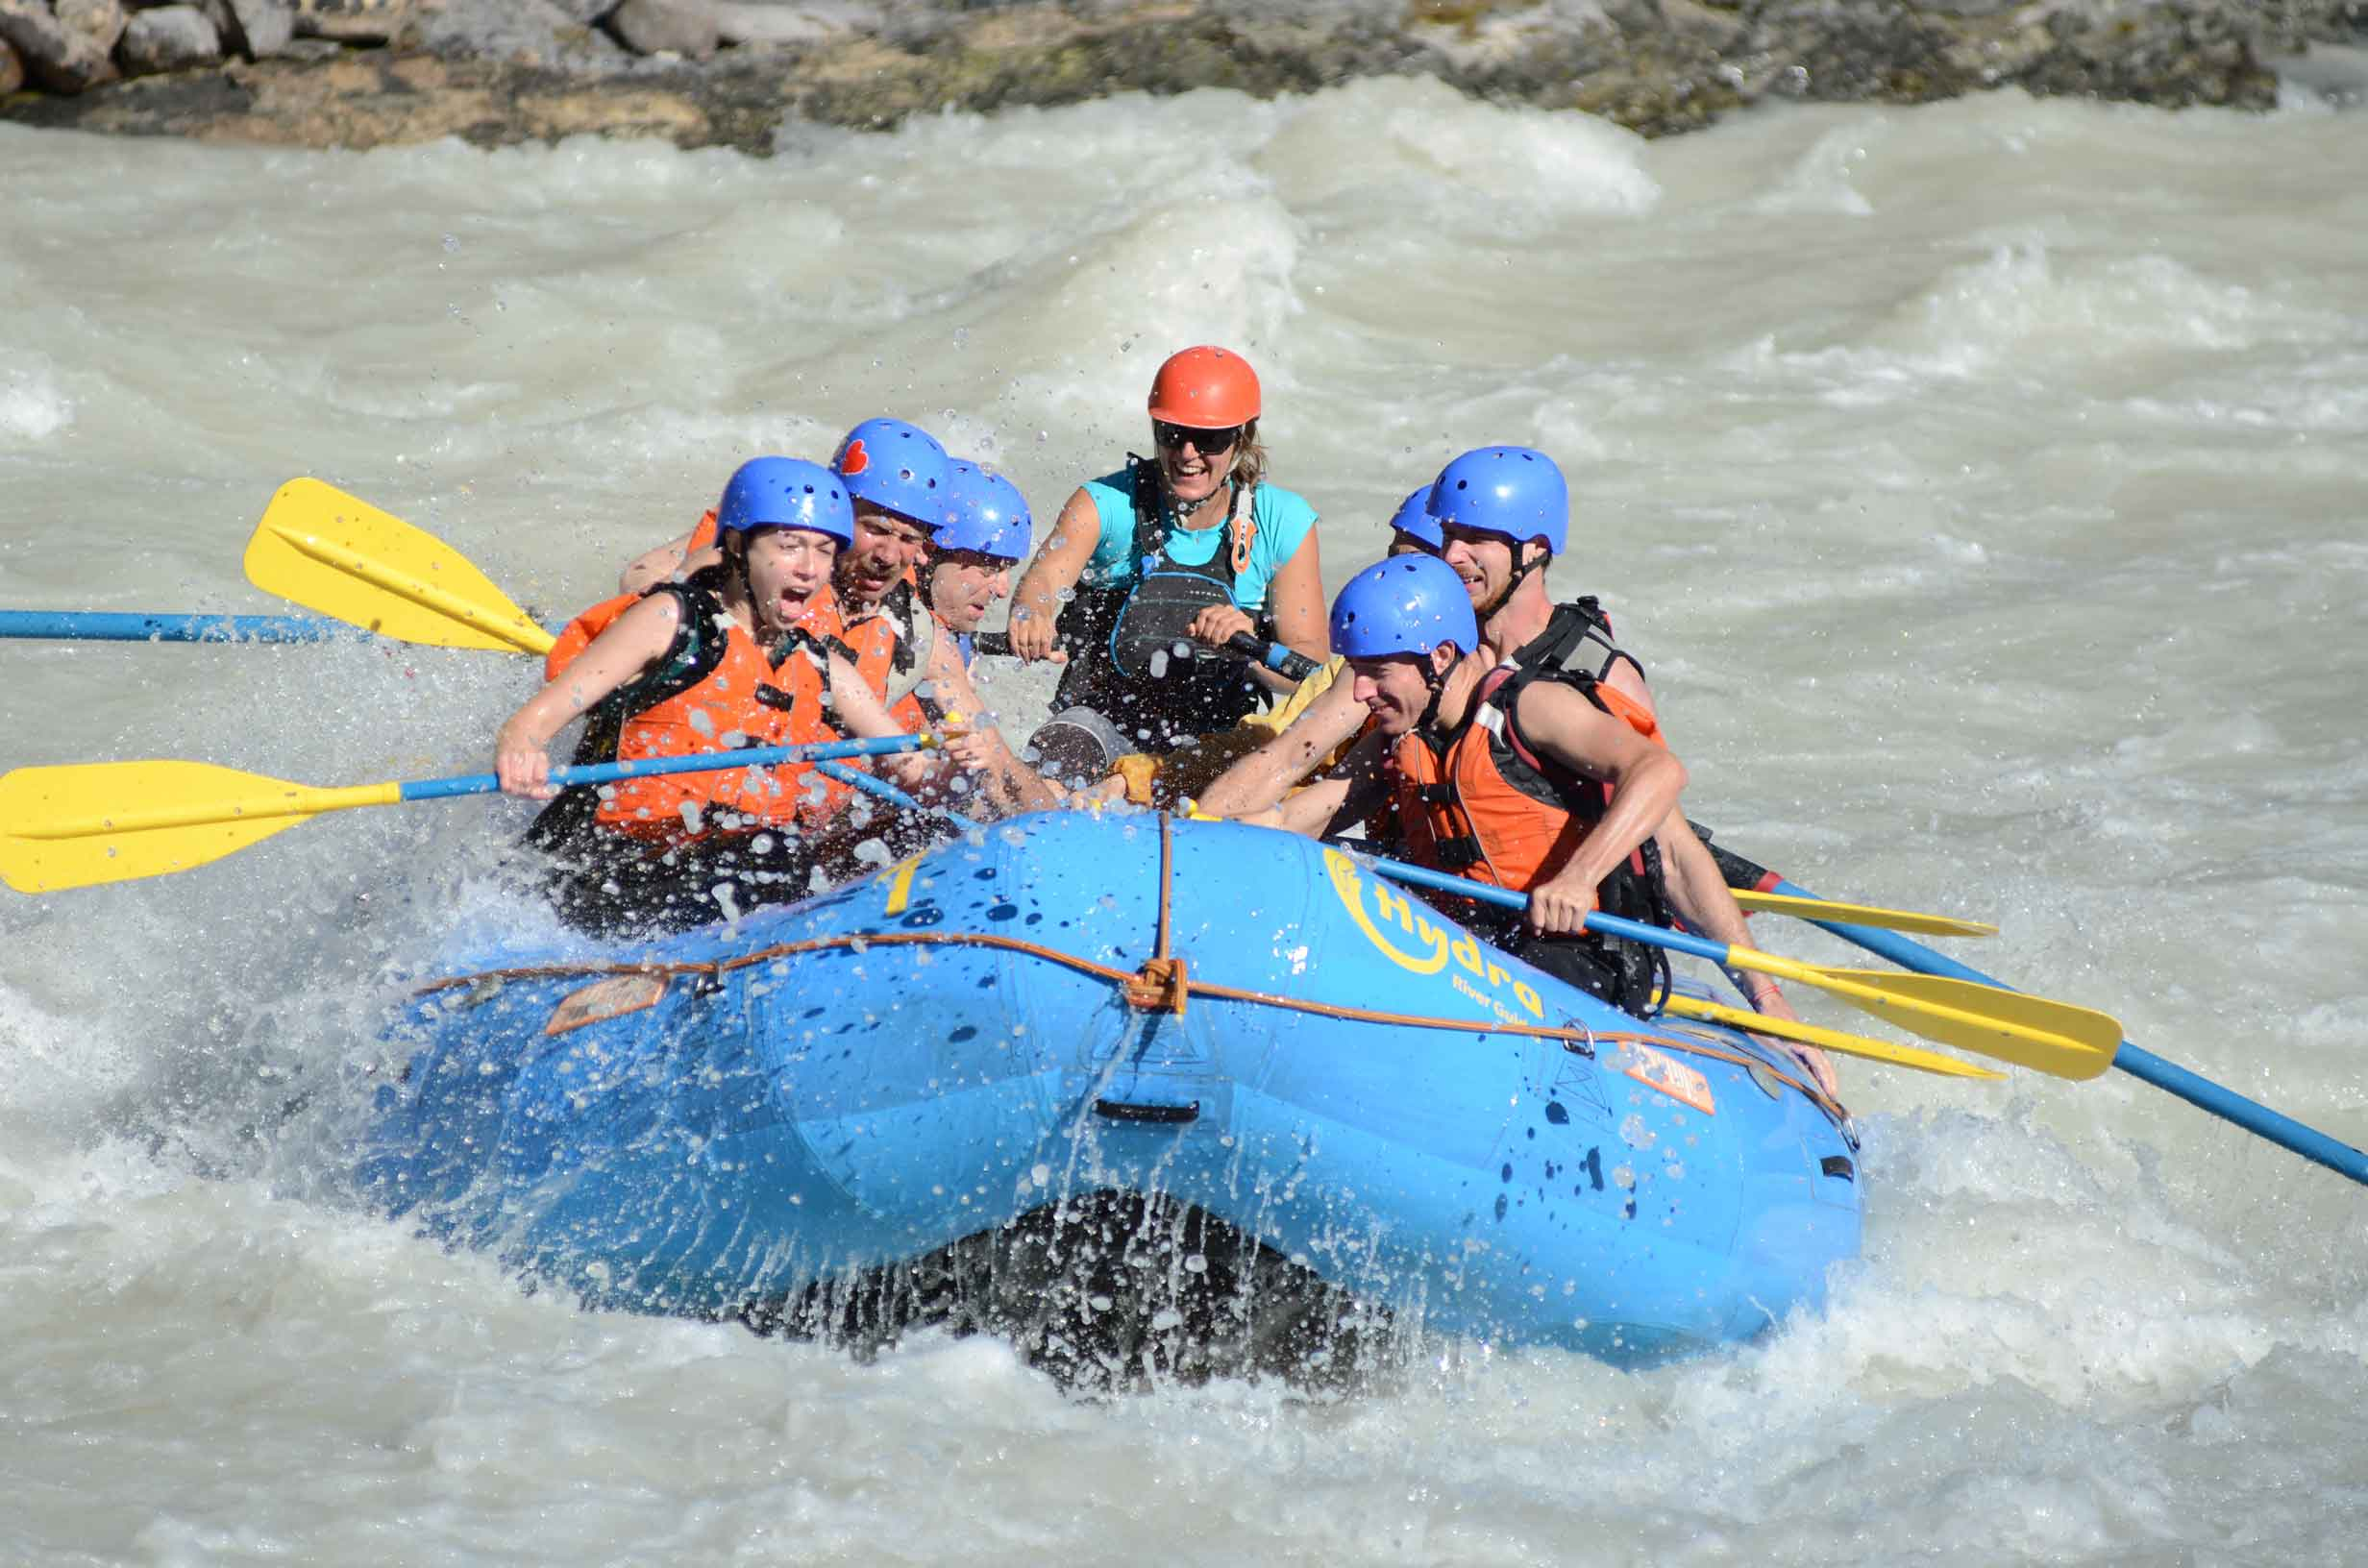 A blue raft crashes through whitewater